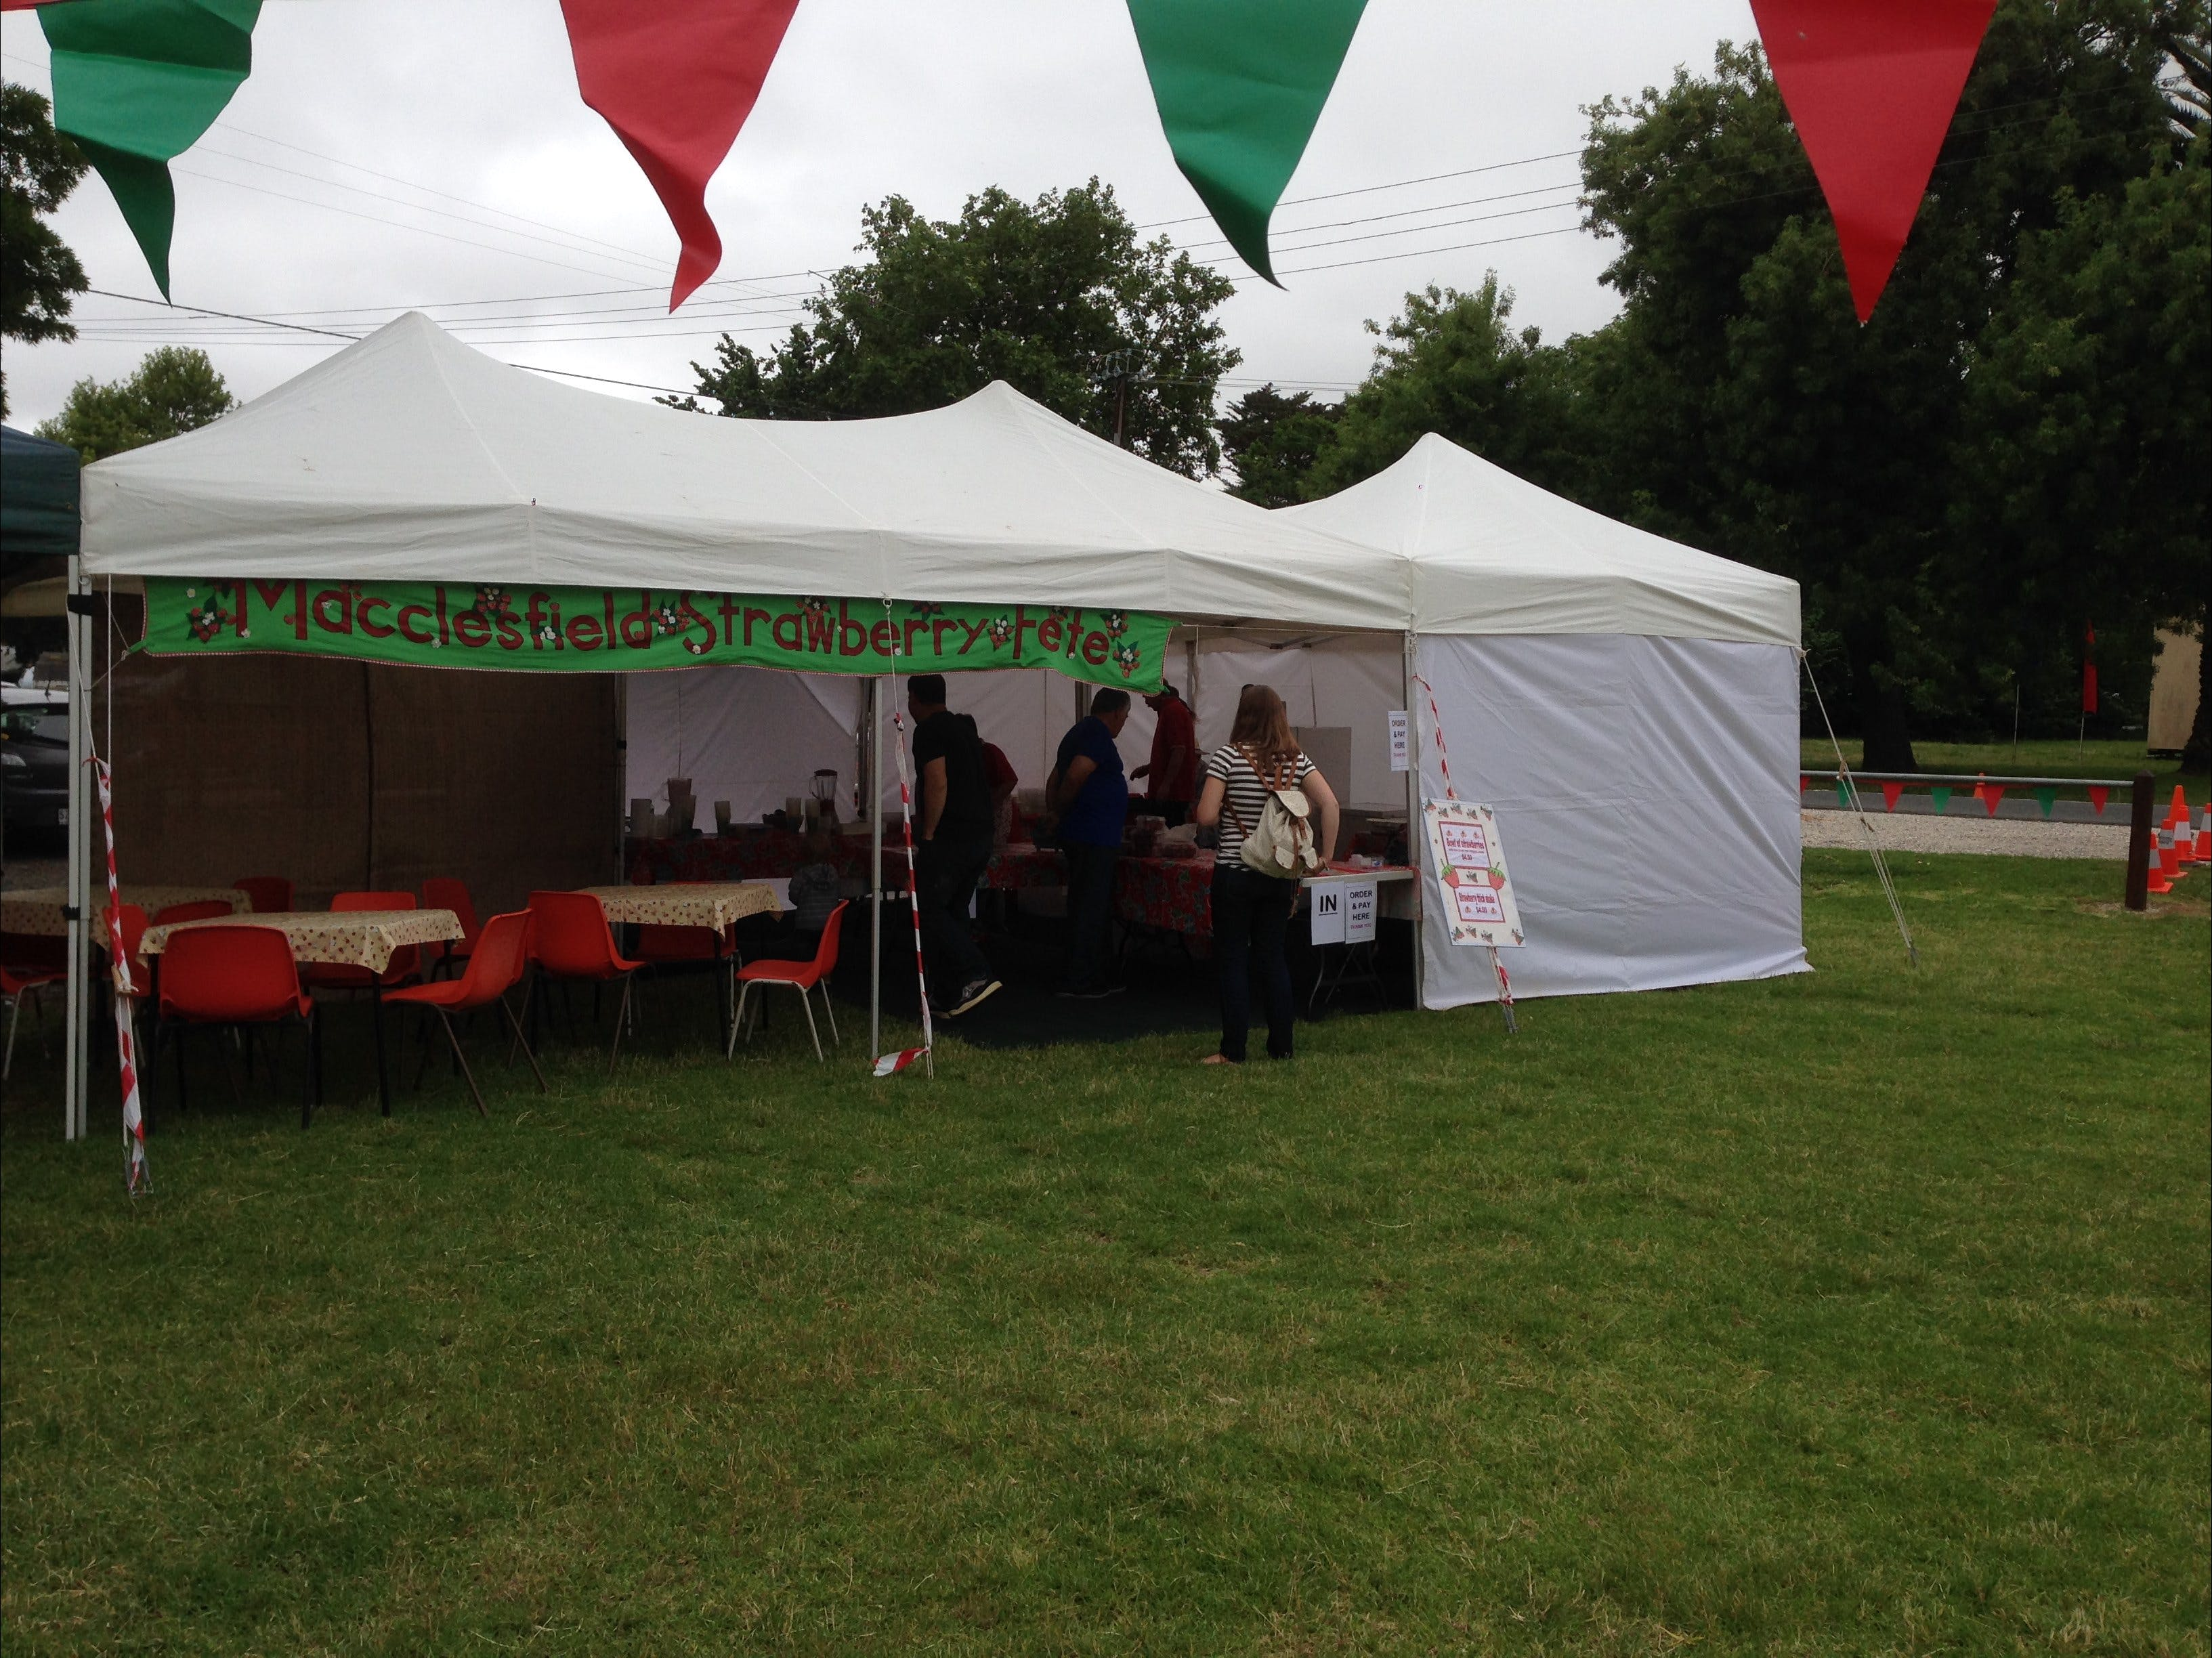 Macclesfield Strawberry Fete - Accommodation Search